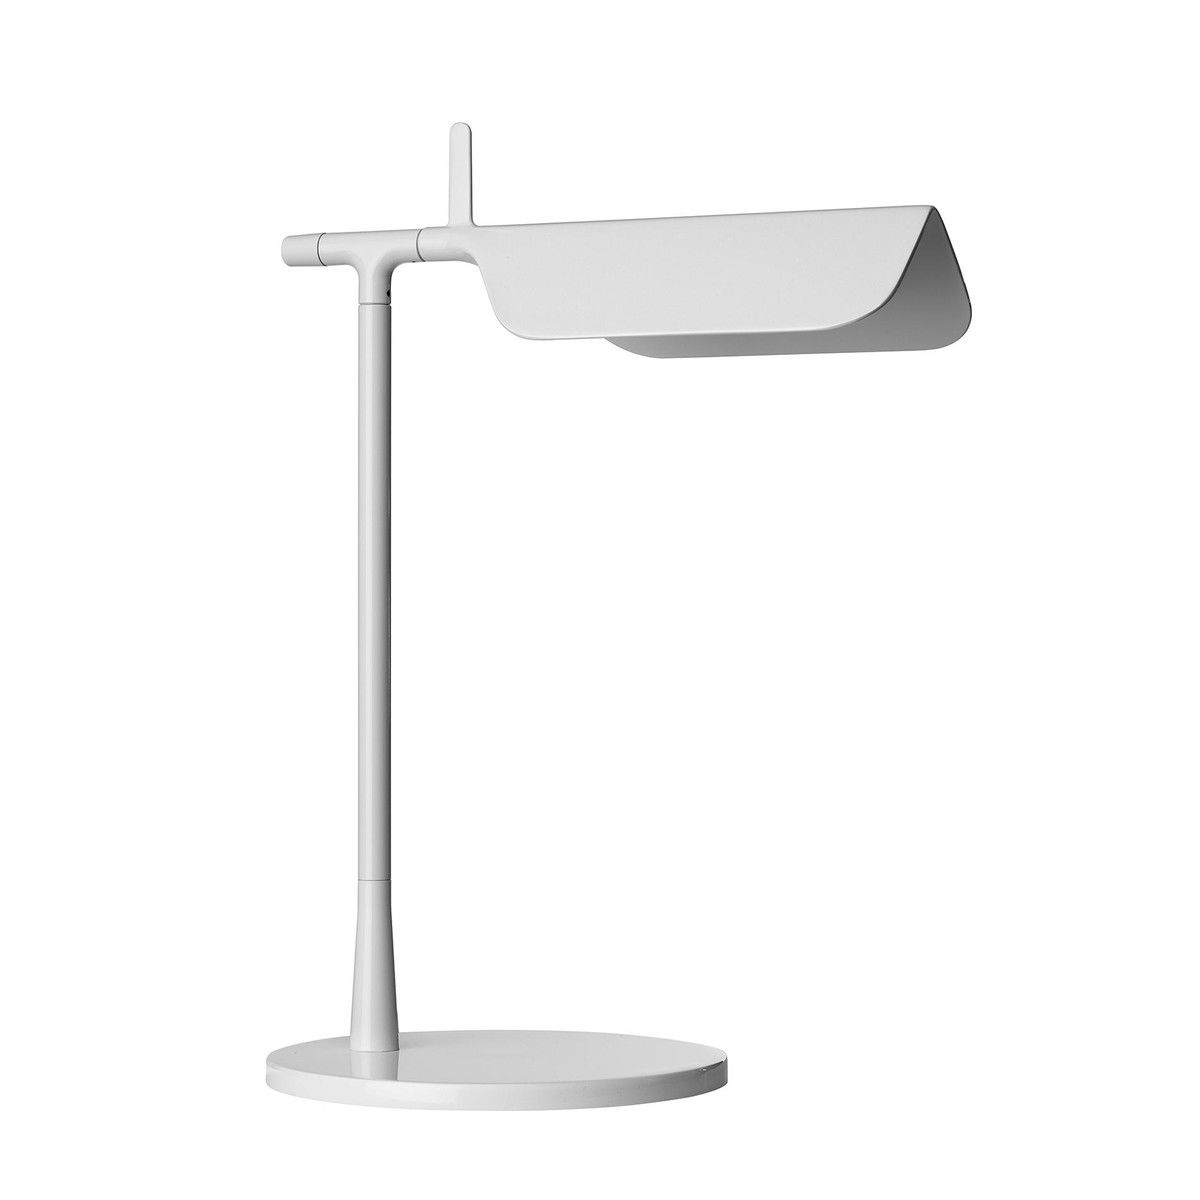 Tab T LED Table Lamp Flos AmbienteDirectcom